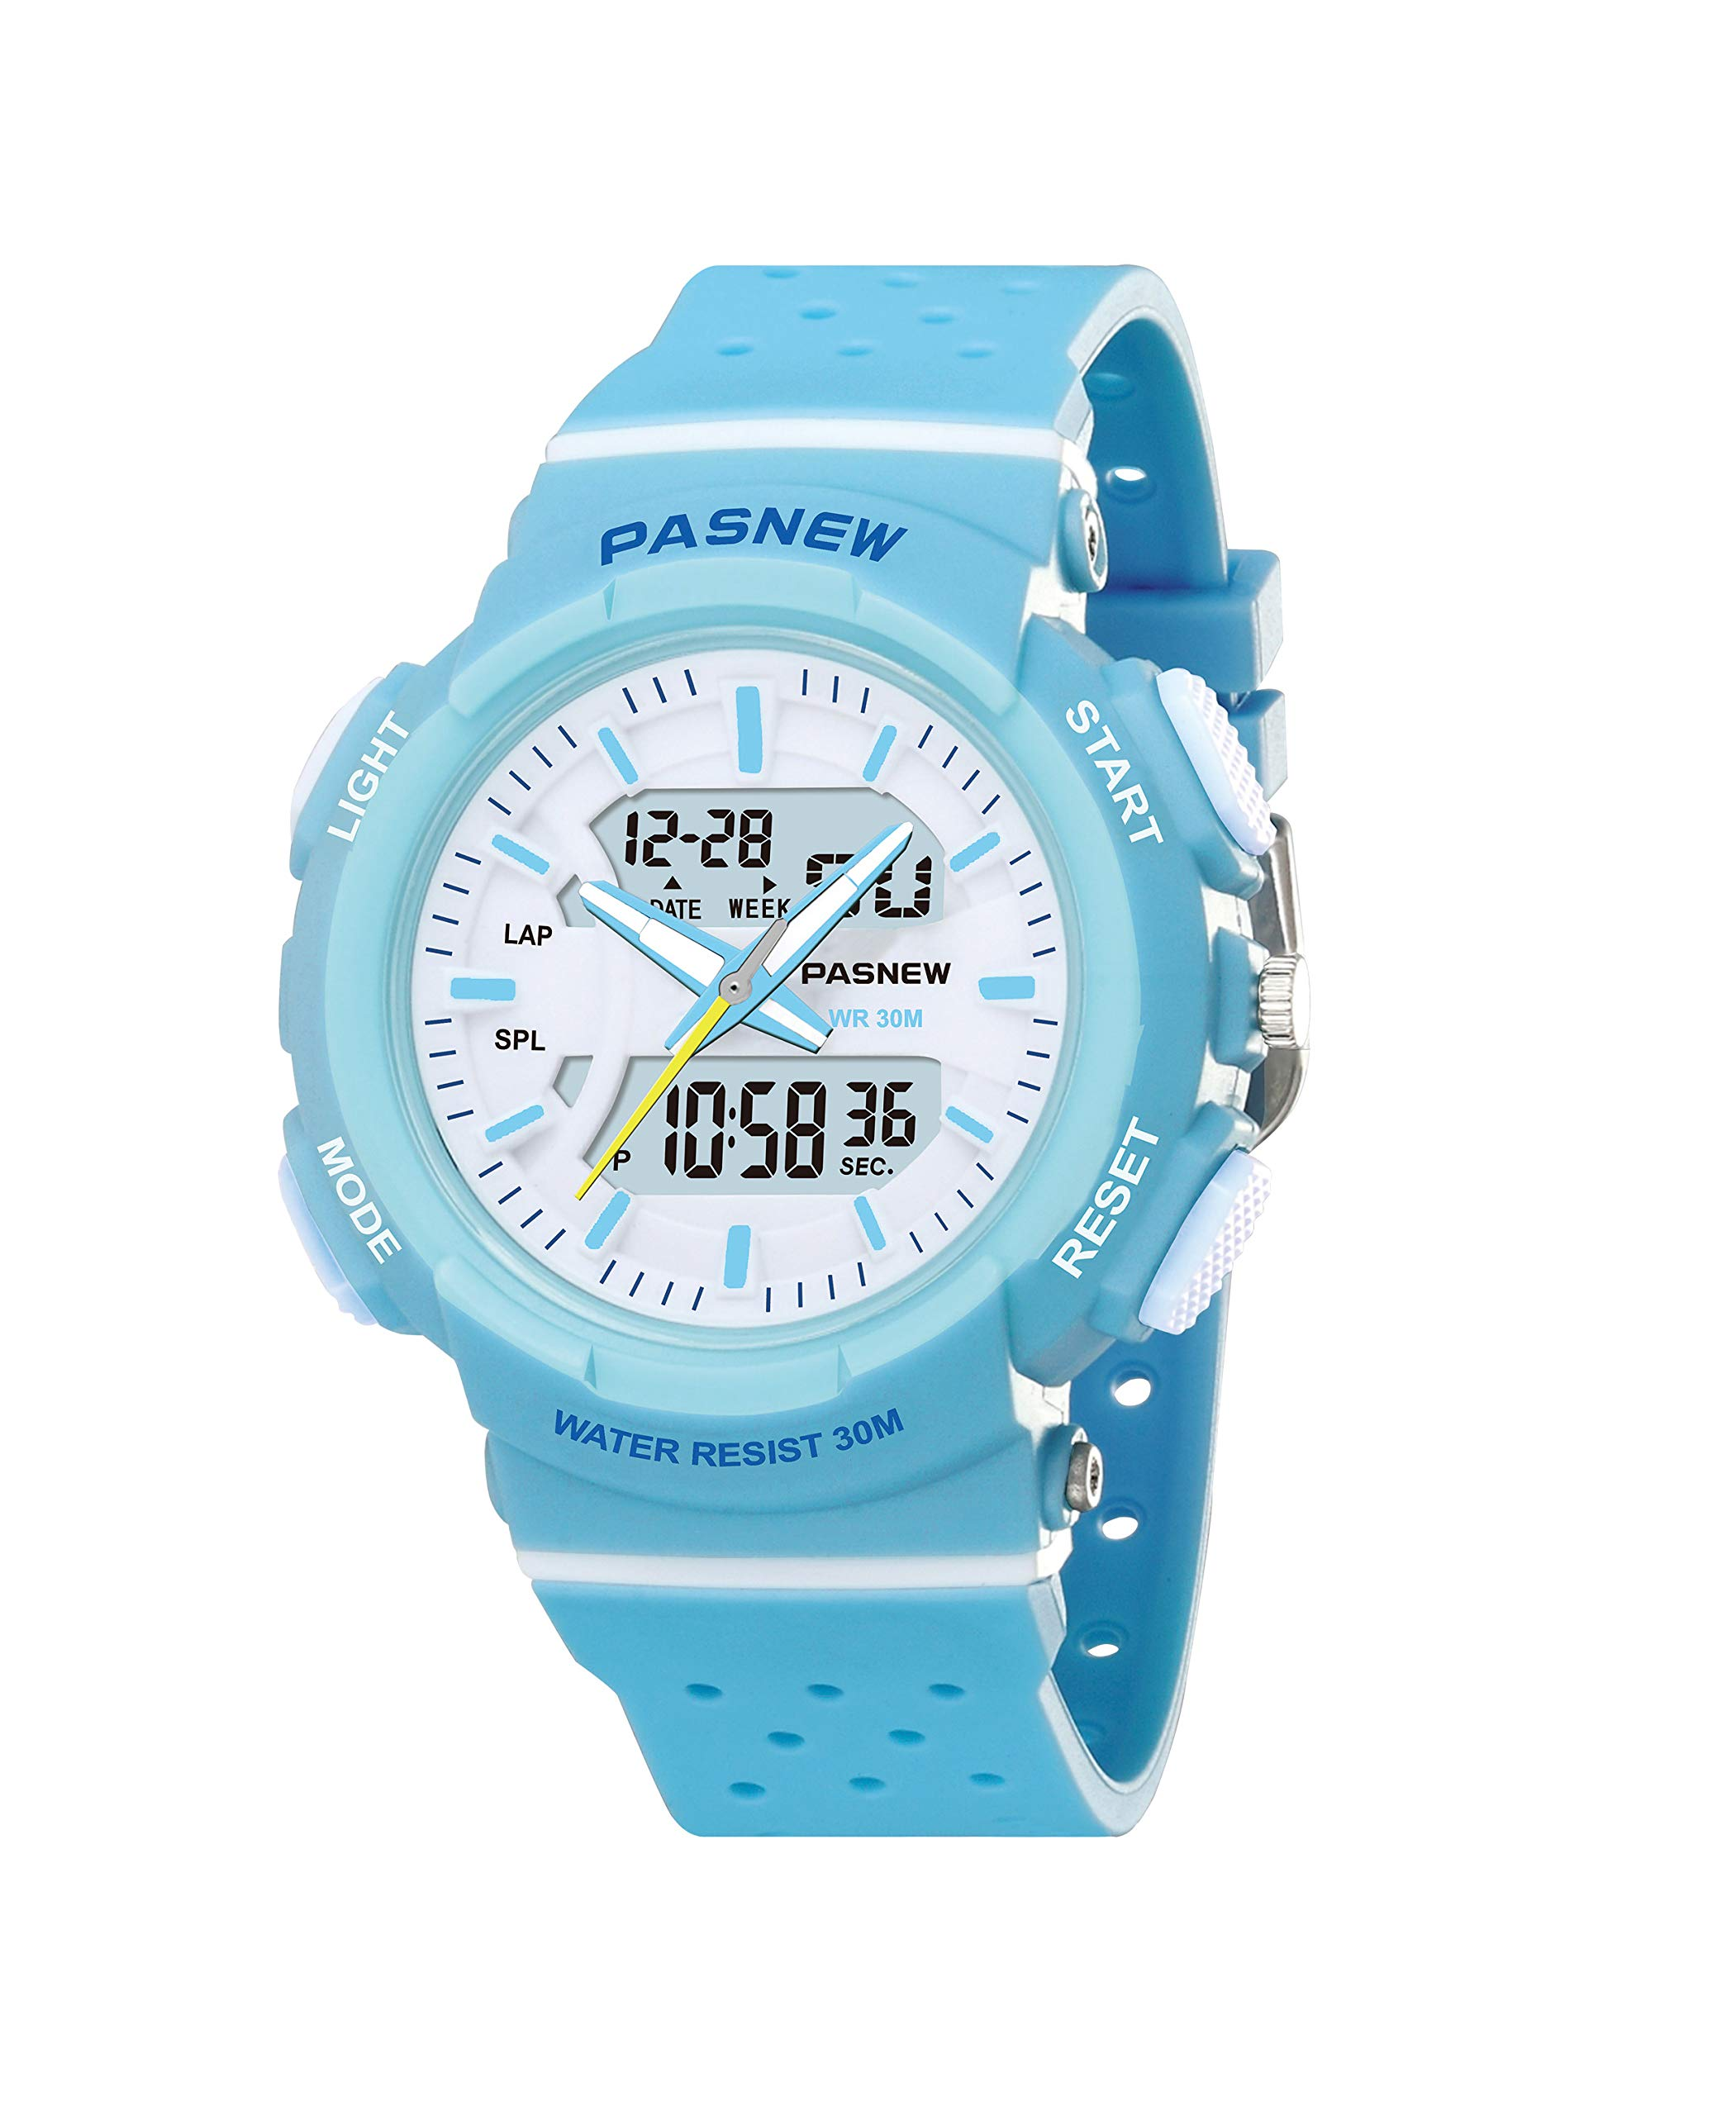 PASNEW Kid Watch Multi Function Digital-Analog Sport Watches for 6-Year Old or Above Children-LightBlue by PASNEW (Image #1)